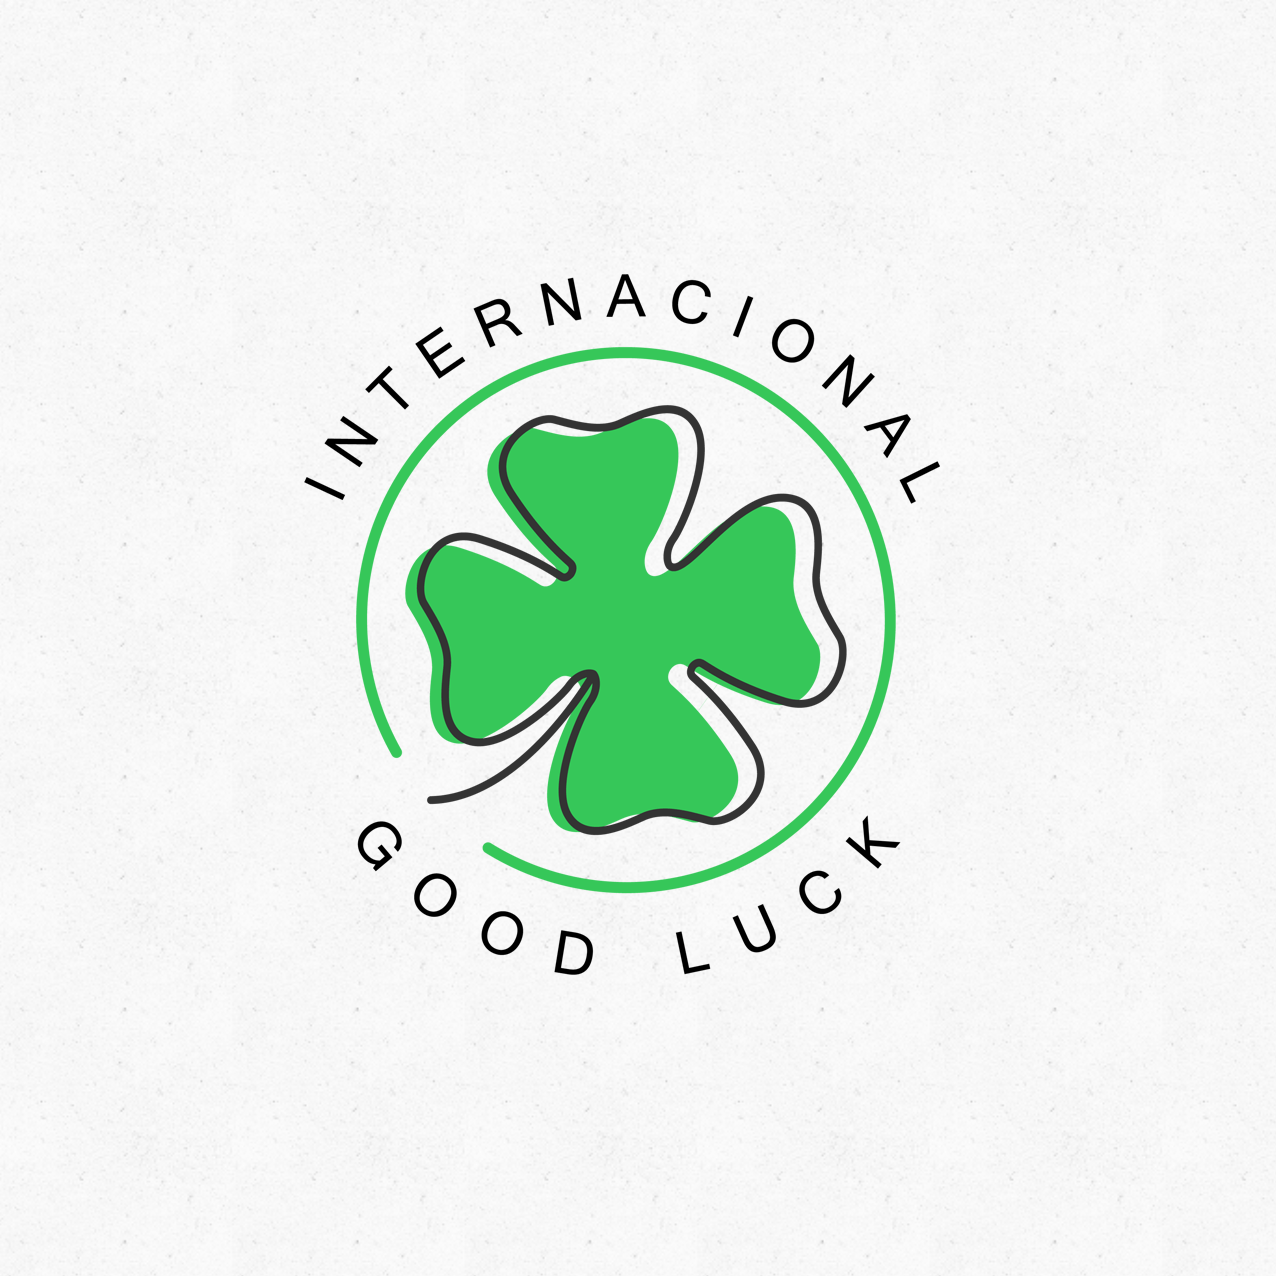 Diseño de isologo para Internacional Good Luck